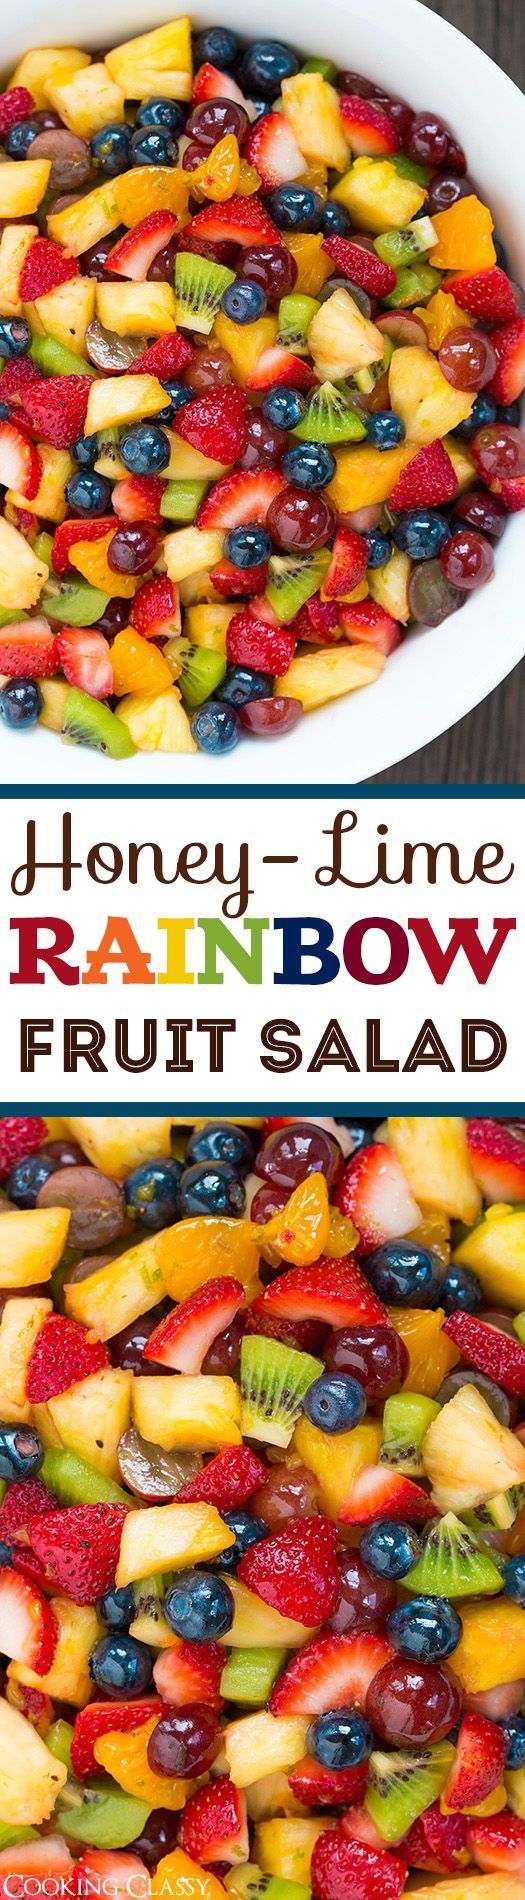 Honey Lime Rainbow Fruit Salad - perfect use for all the fresh summer fruit! Love that the dressing compliments the fruit rather then overwhelms it. (Cool Desserts For Summer)